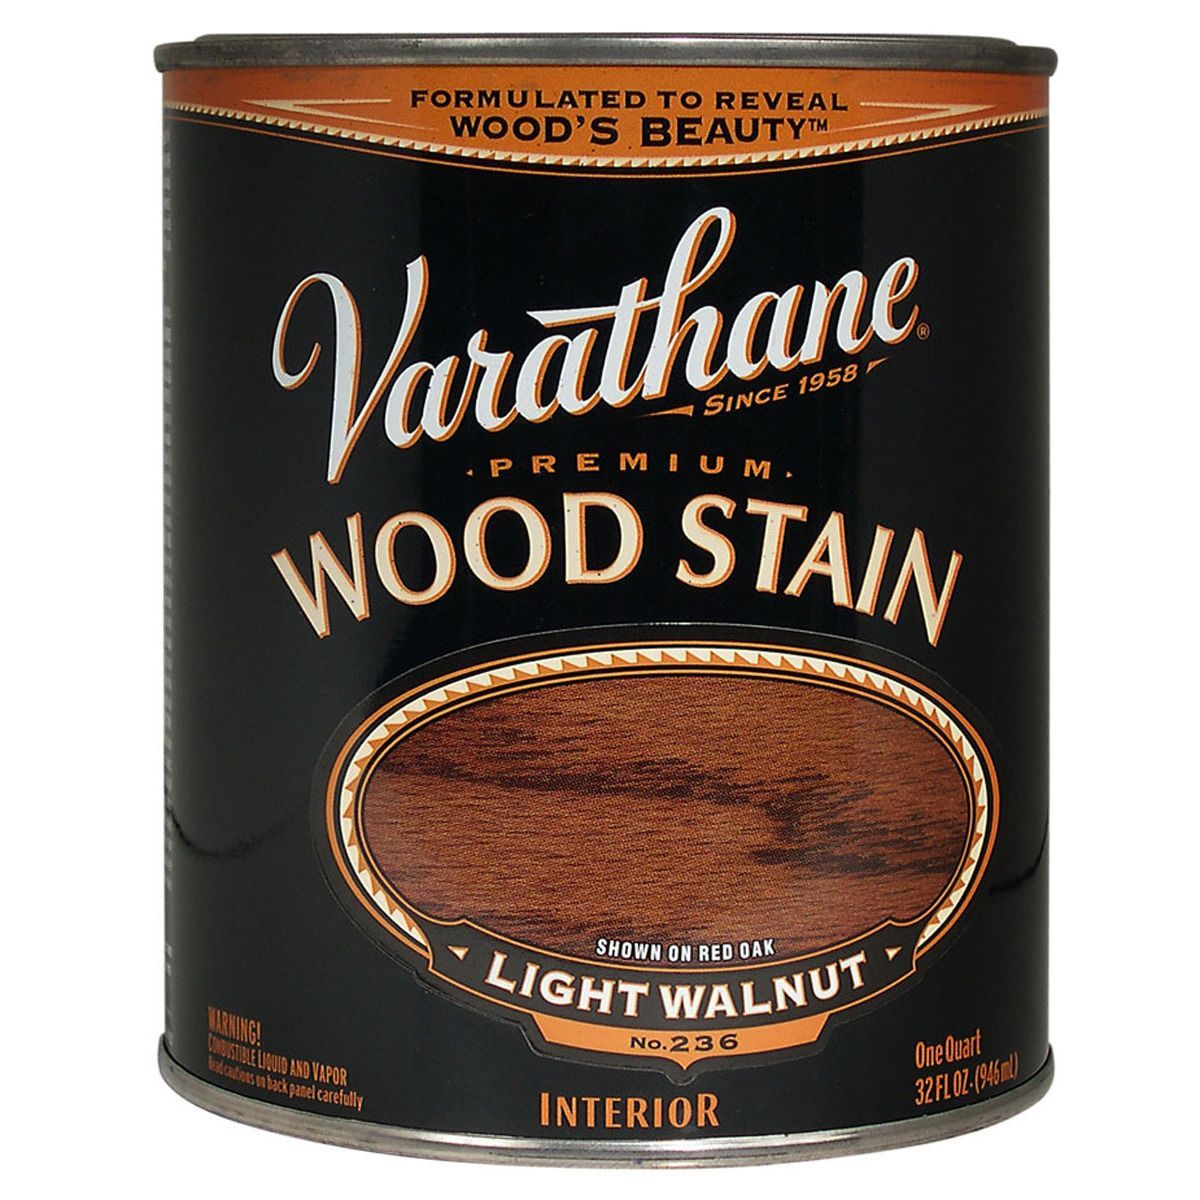 Minwax gel stain colors home depot wood stains color chart car tuning - Varathane 211719h 1 Quart Light Walnut Varathane Premium Wood Stain By Varathane Wood Stainstainsminwaxinto